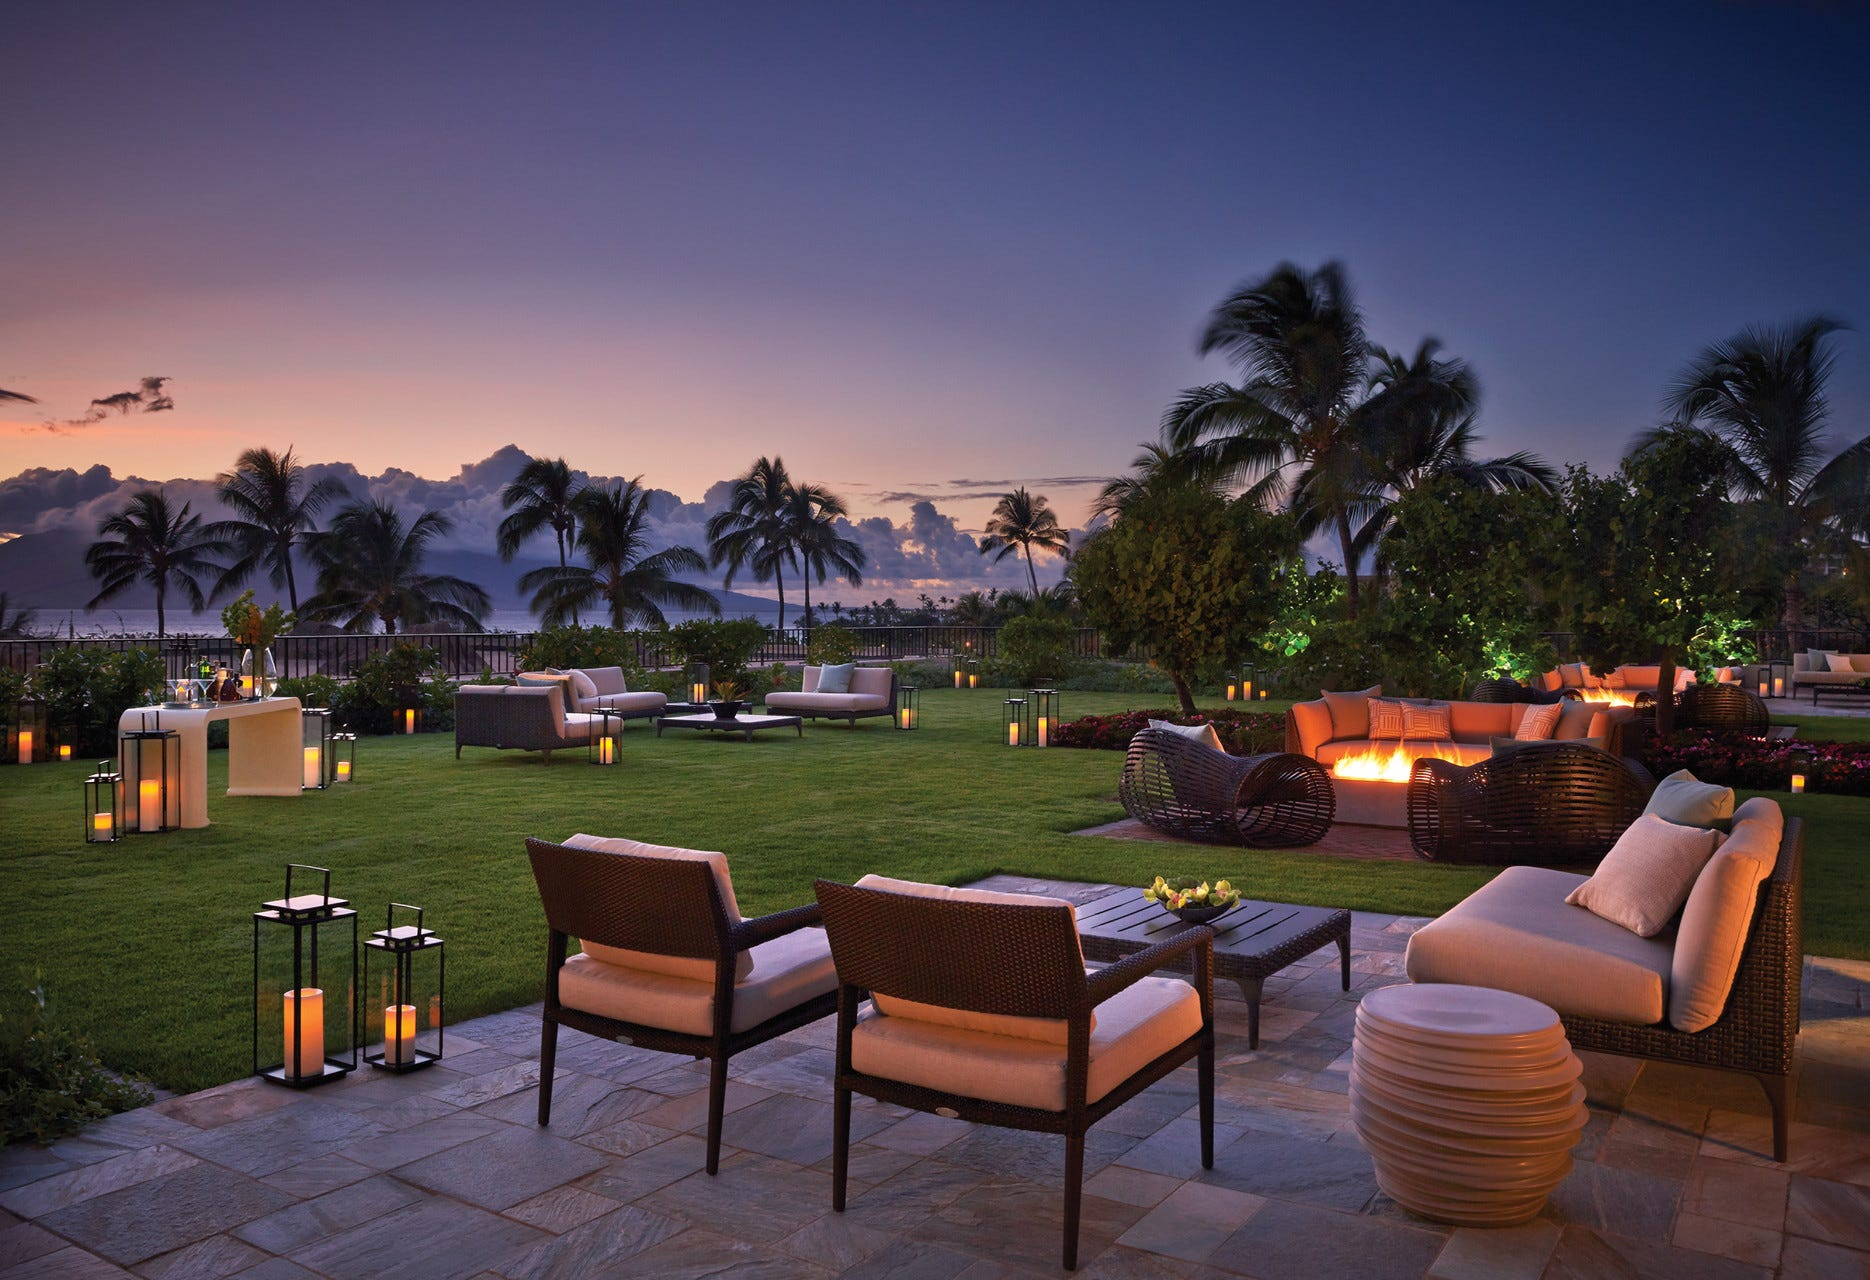 a8149ca5-9e0c-41b2-9fcf-843feb58c5e0-7-Four_Seasons_Resort_Maui_at_Wailea